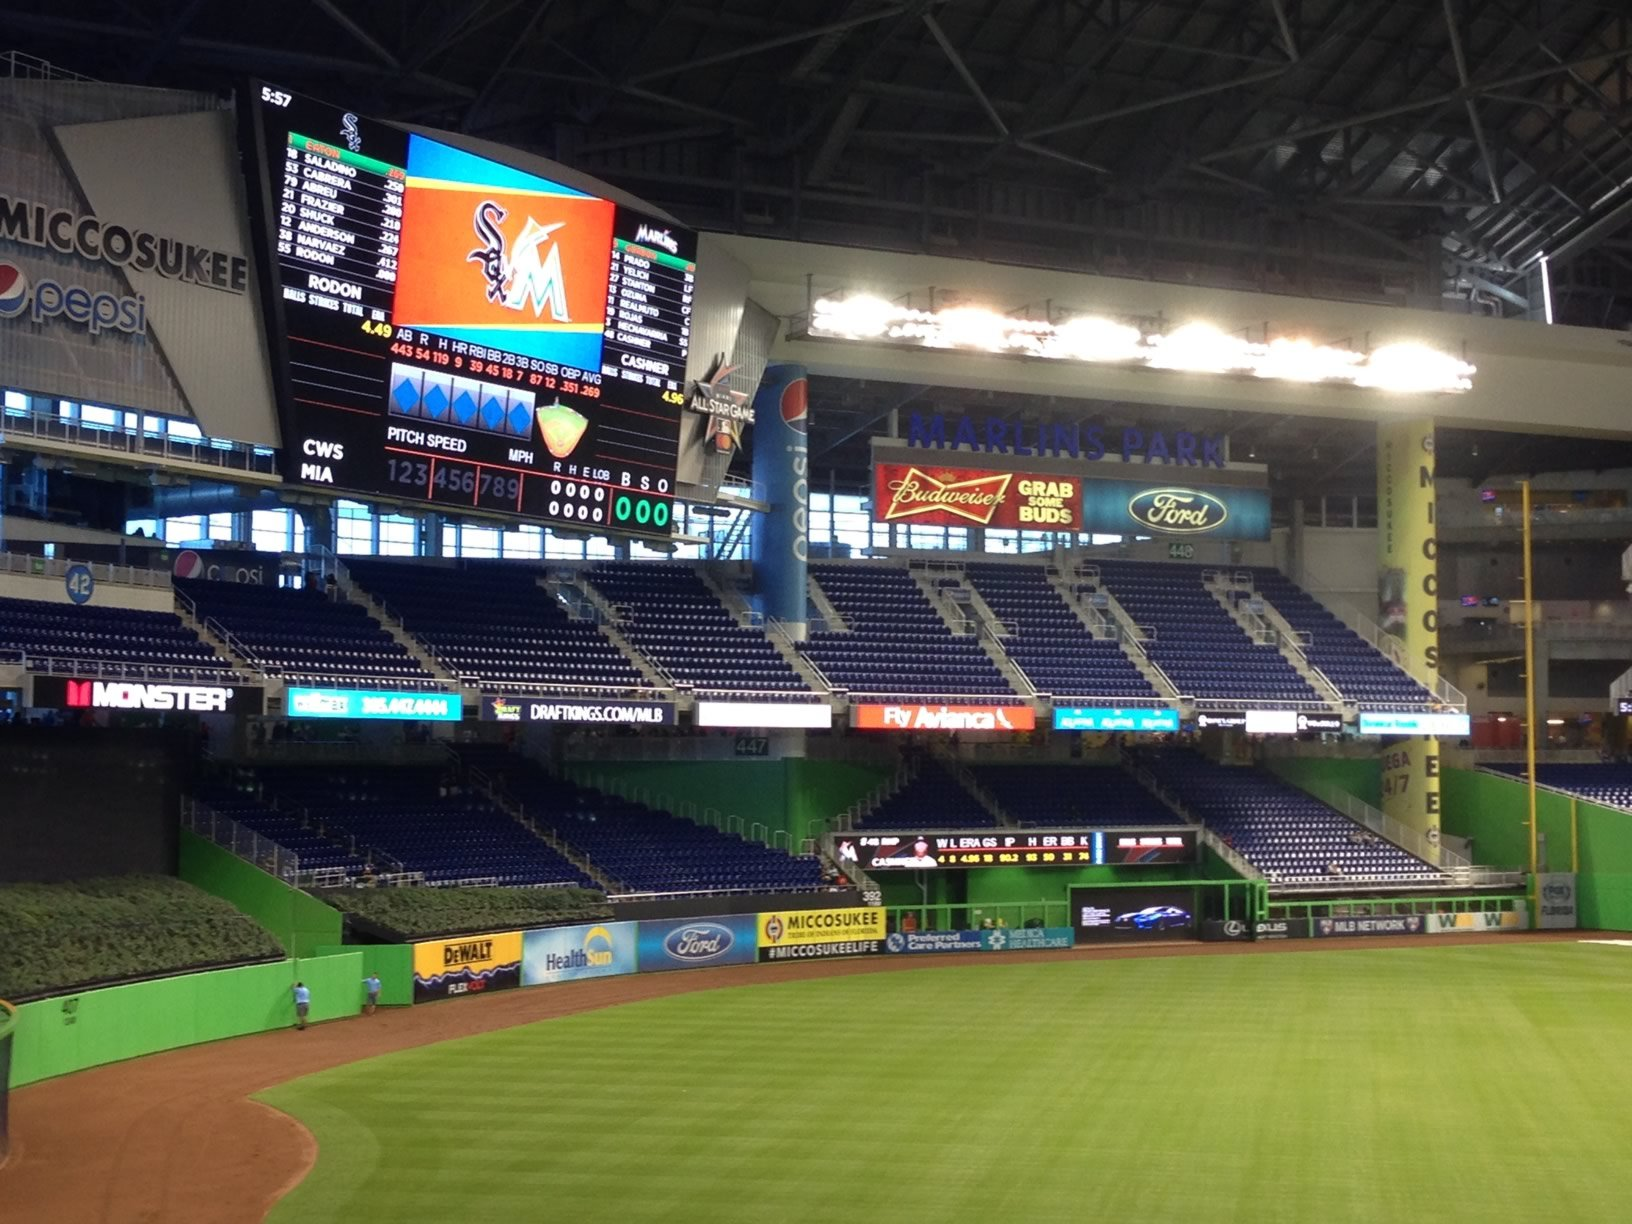 Marlins Park Outfield Seats in Right Field